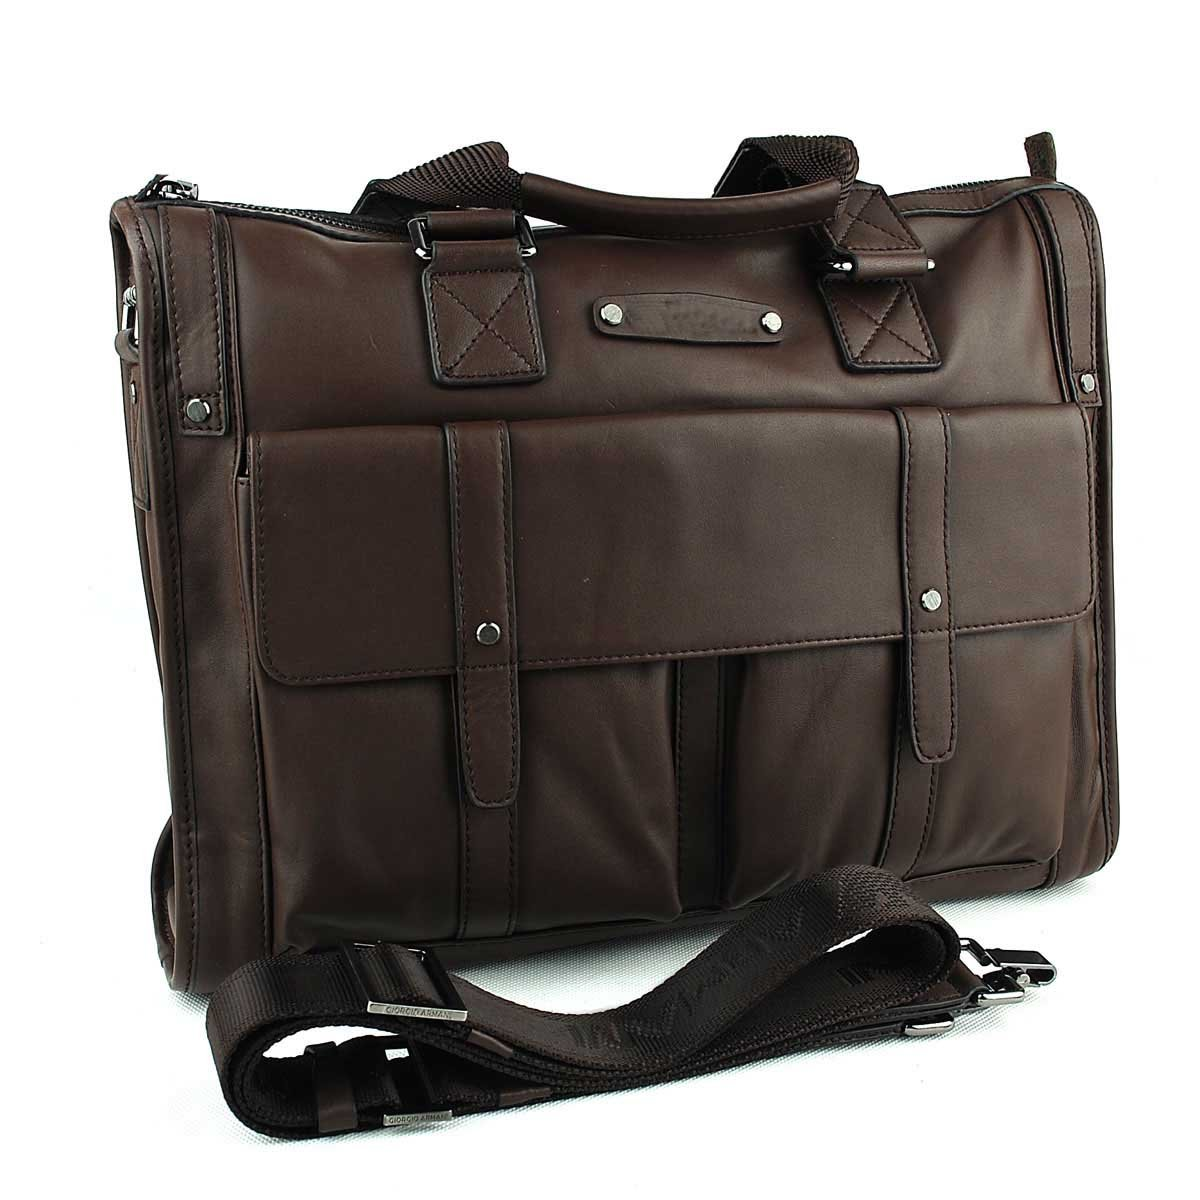 High quality leather camera bags, messenger bags, laptop bag, briefcases and accessories made in America. Crafted from the finest American and Italian full grain leather our products come with a .